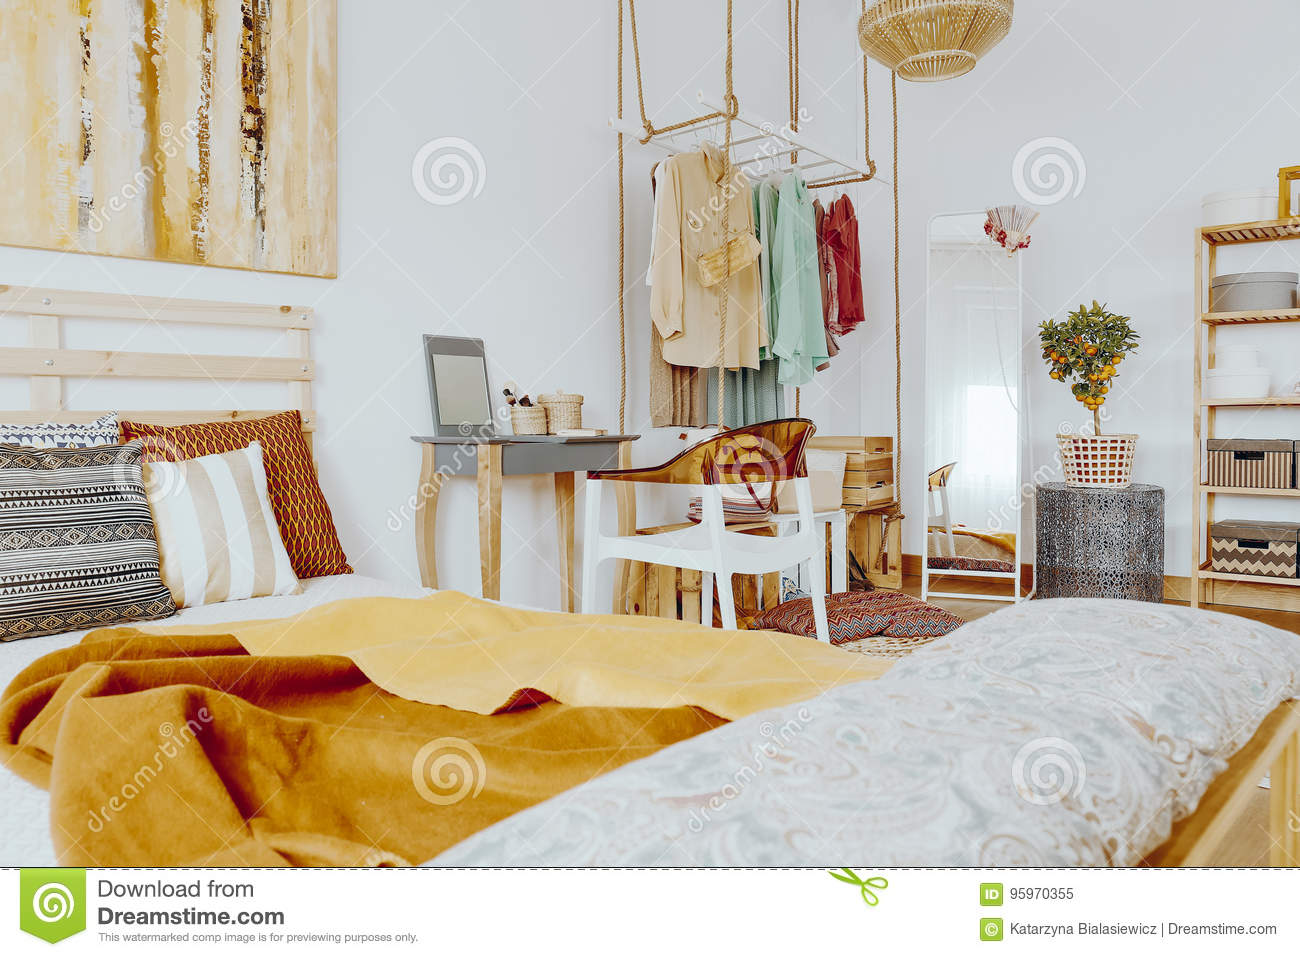 Bed With Pillows And Blanket Stock Image Image Of Elegant